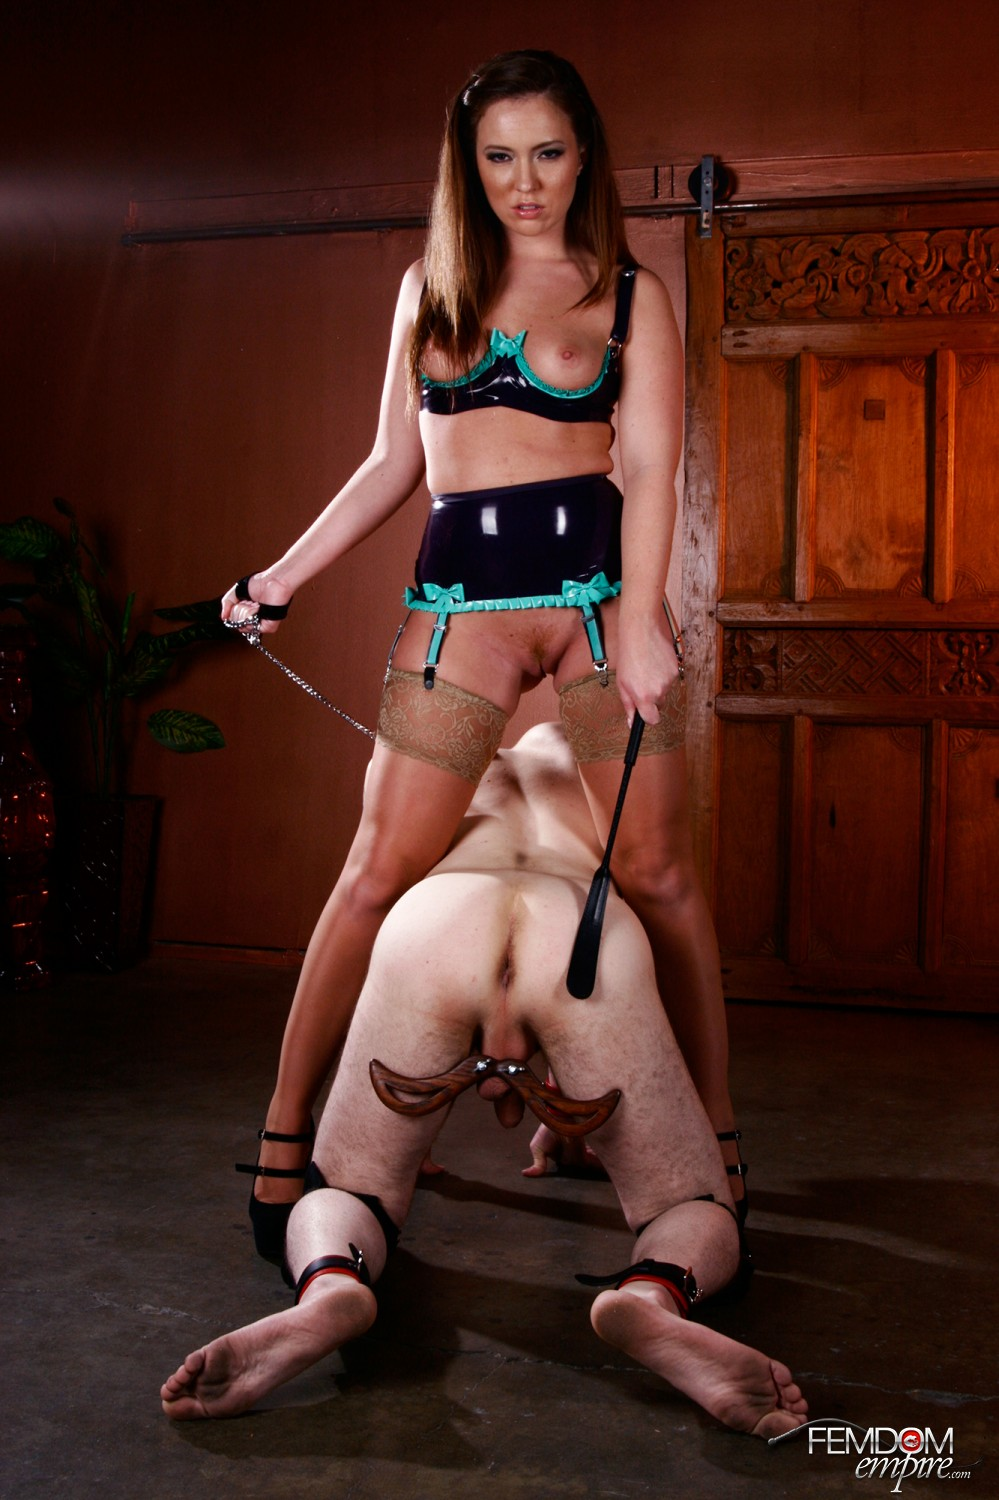 Mistress Maddy O'Reilly is going to take out her bad mood on her humbled sub's plums.